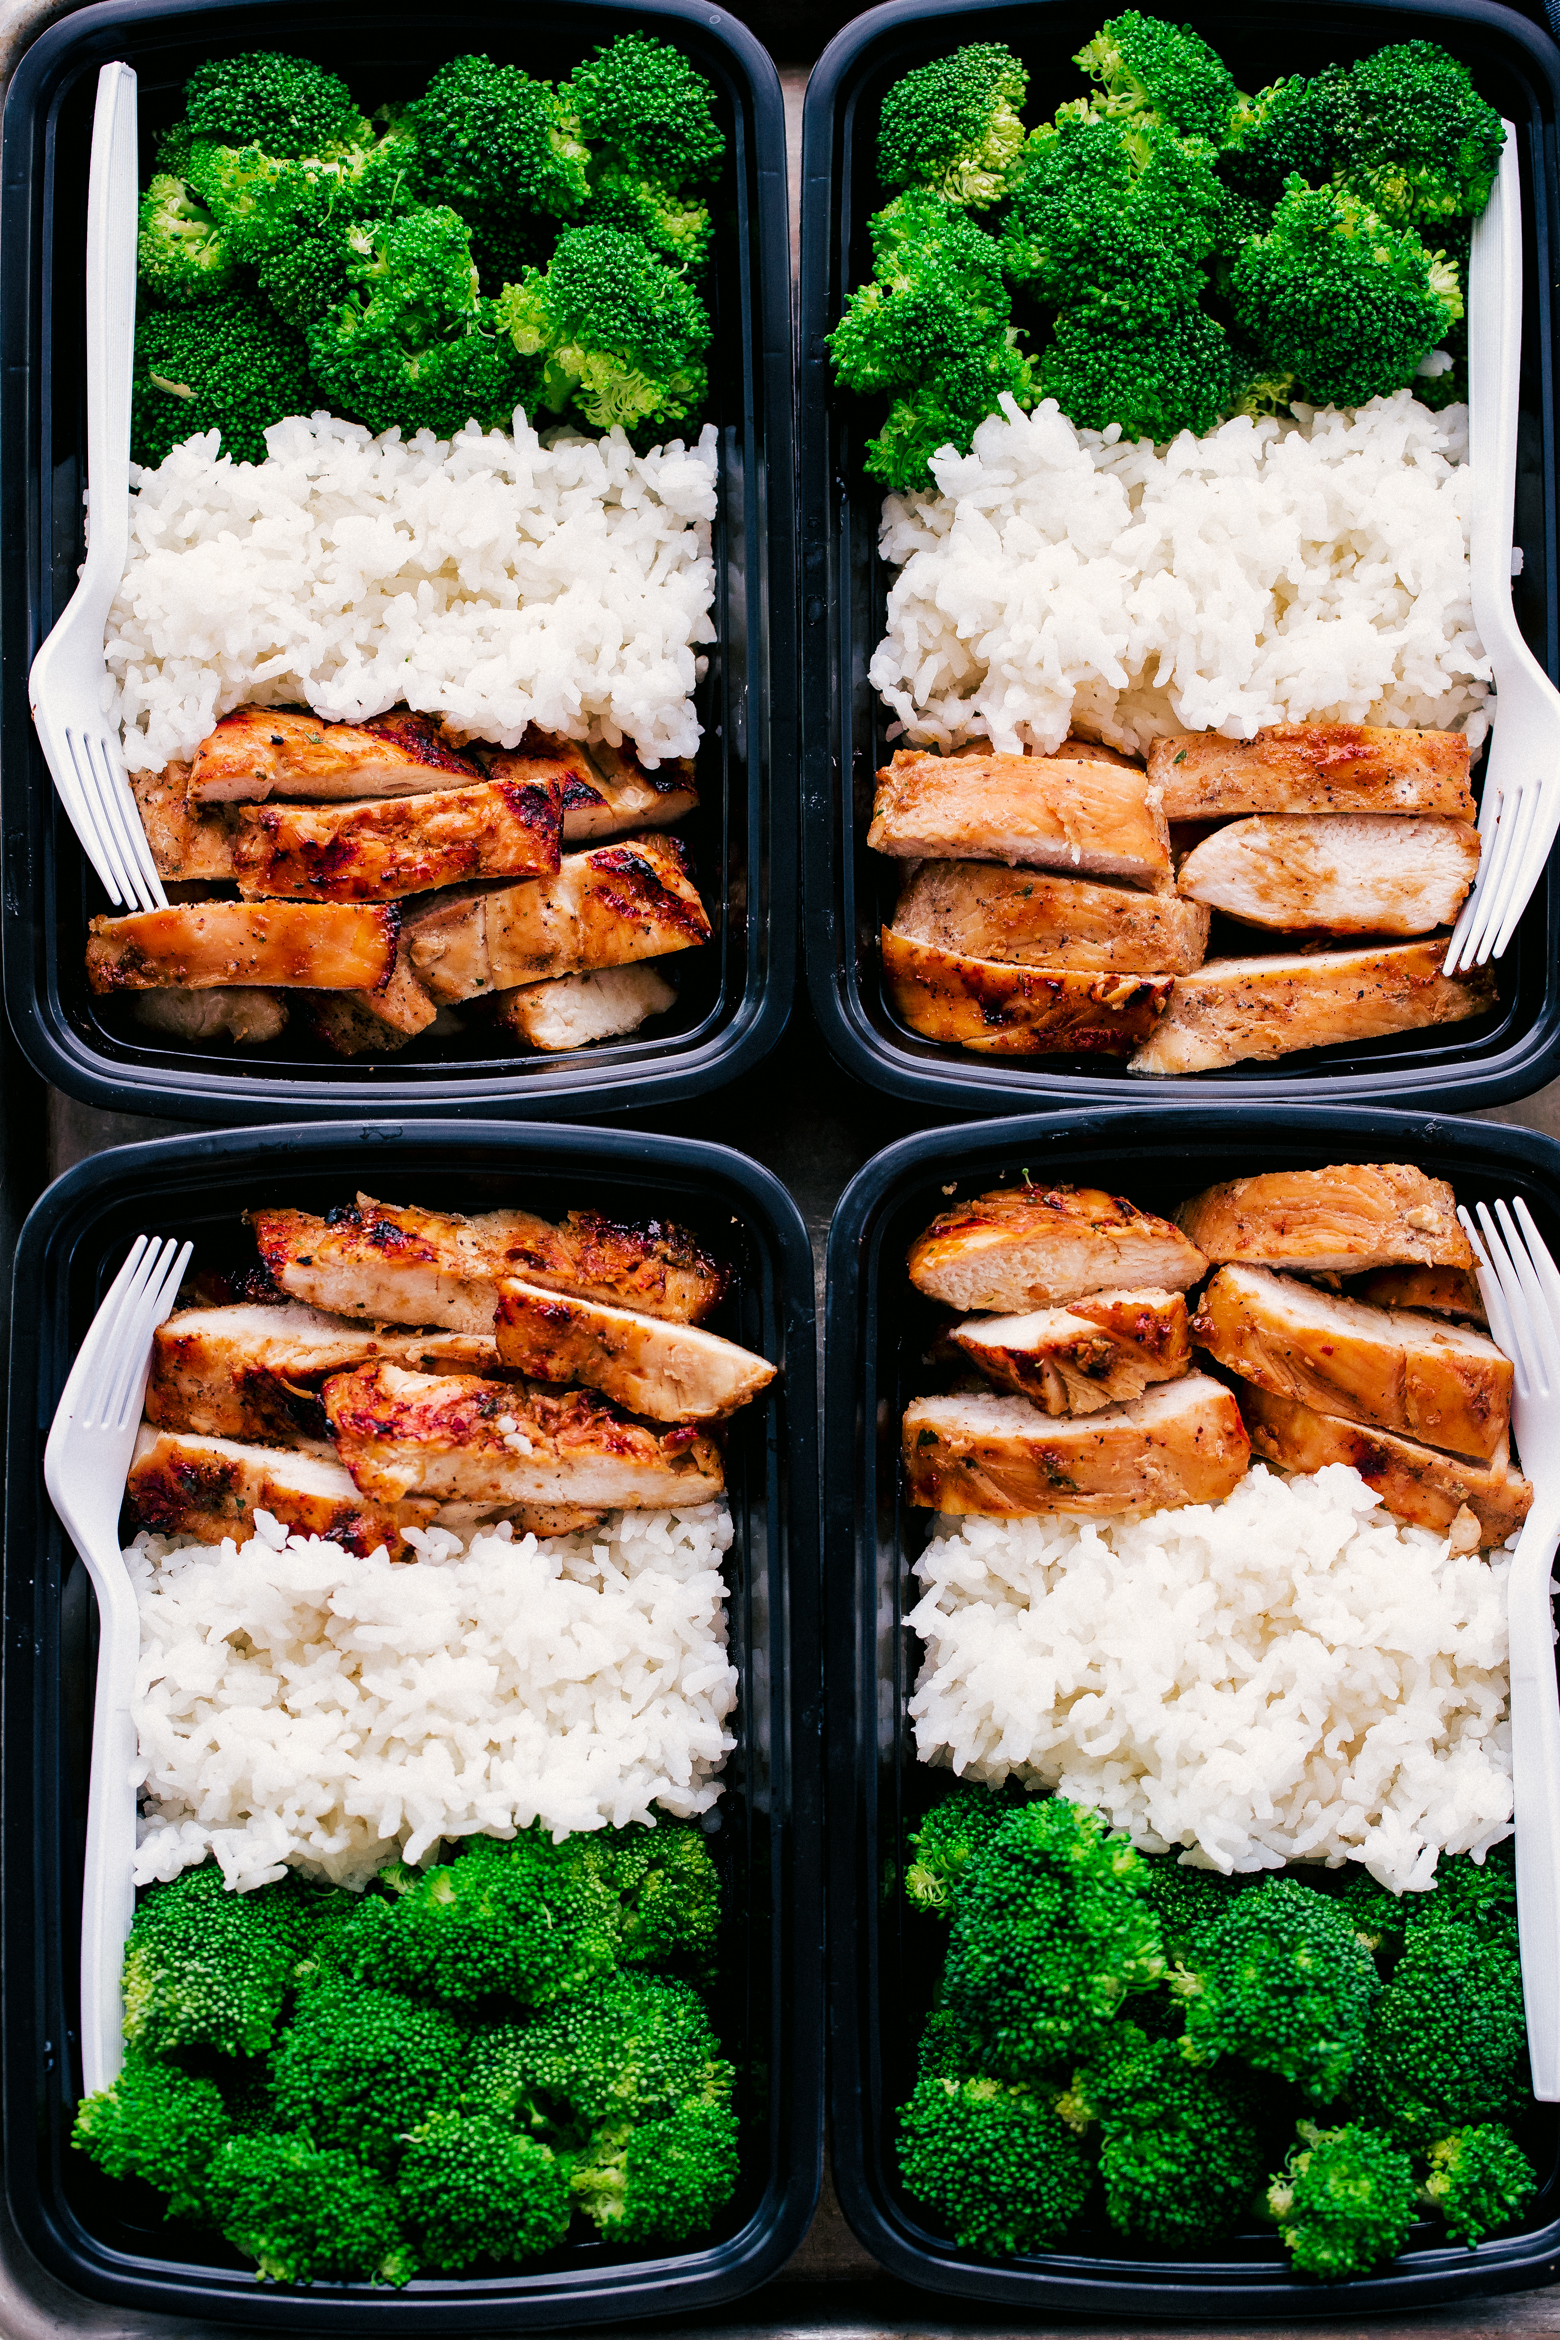 Teriyaki chicken meal prep in black containers served with white rice and steamed broccoli, simple and healthy by The Food Cafe.